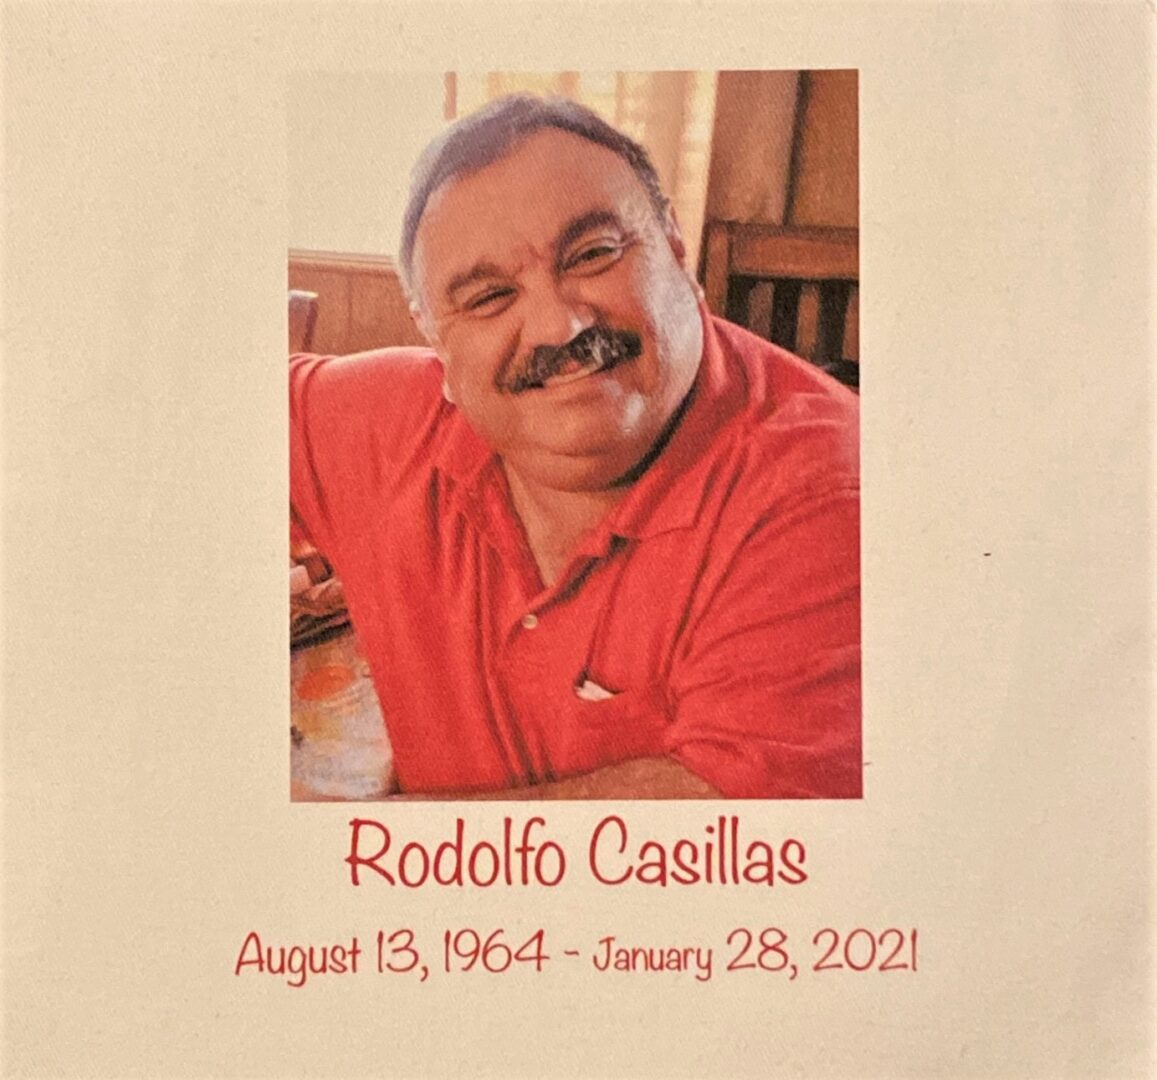 IN MEMORY OF RODOLFO CASILLAS (THEIR SON) - 8/13/1964 - 01/28/2021 - LOST 13 DAYS LATER